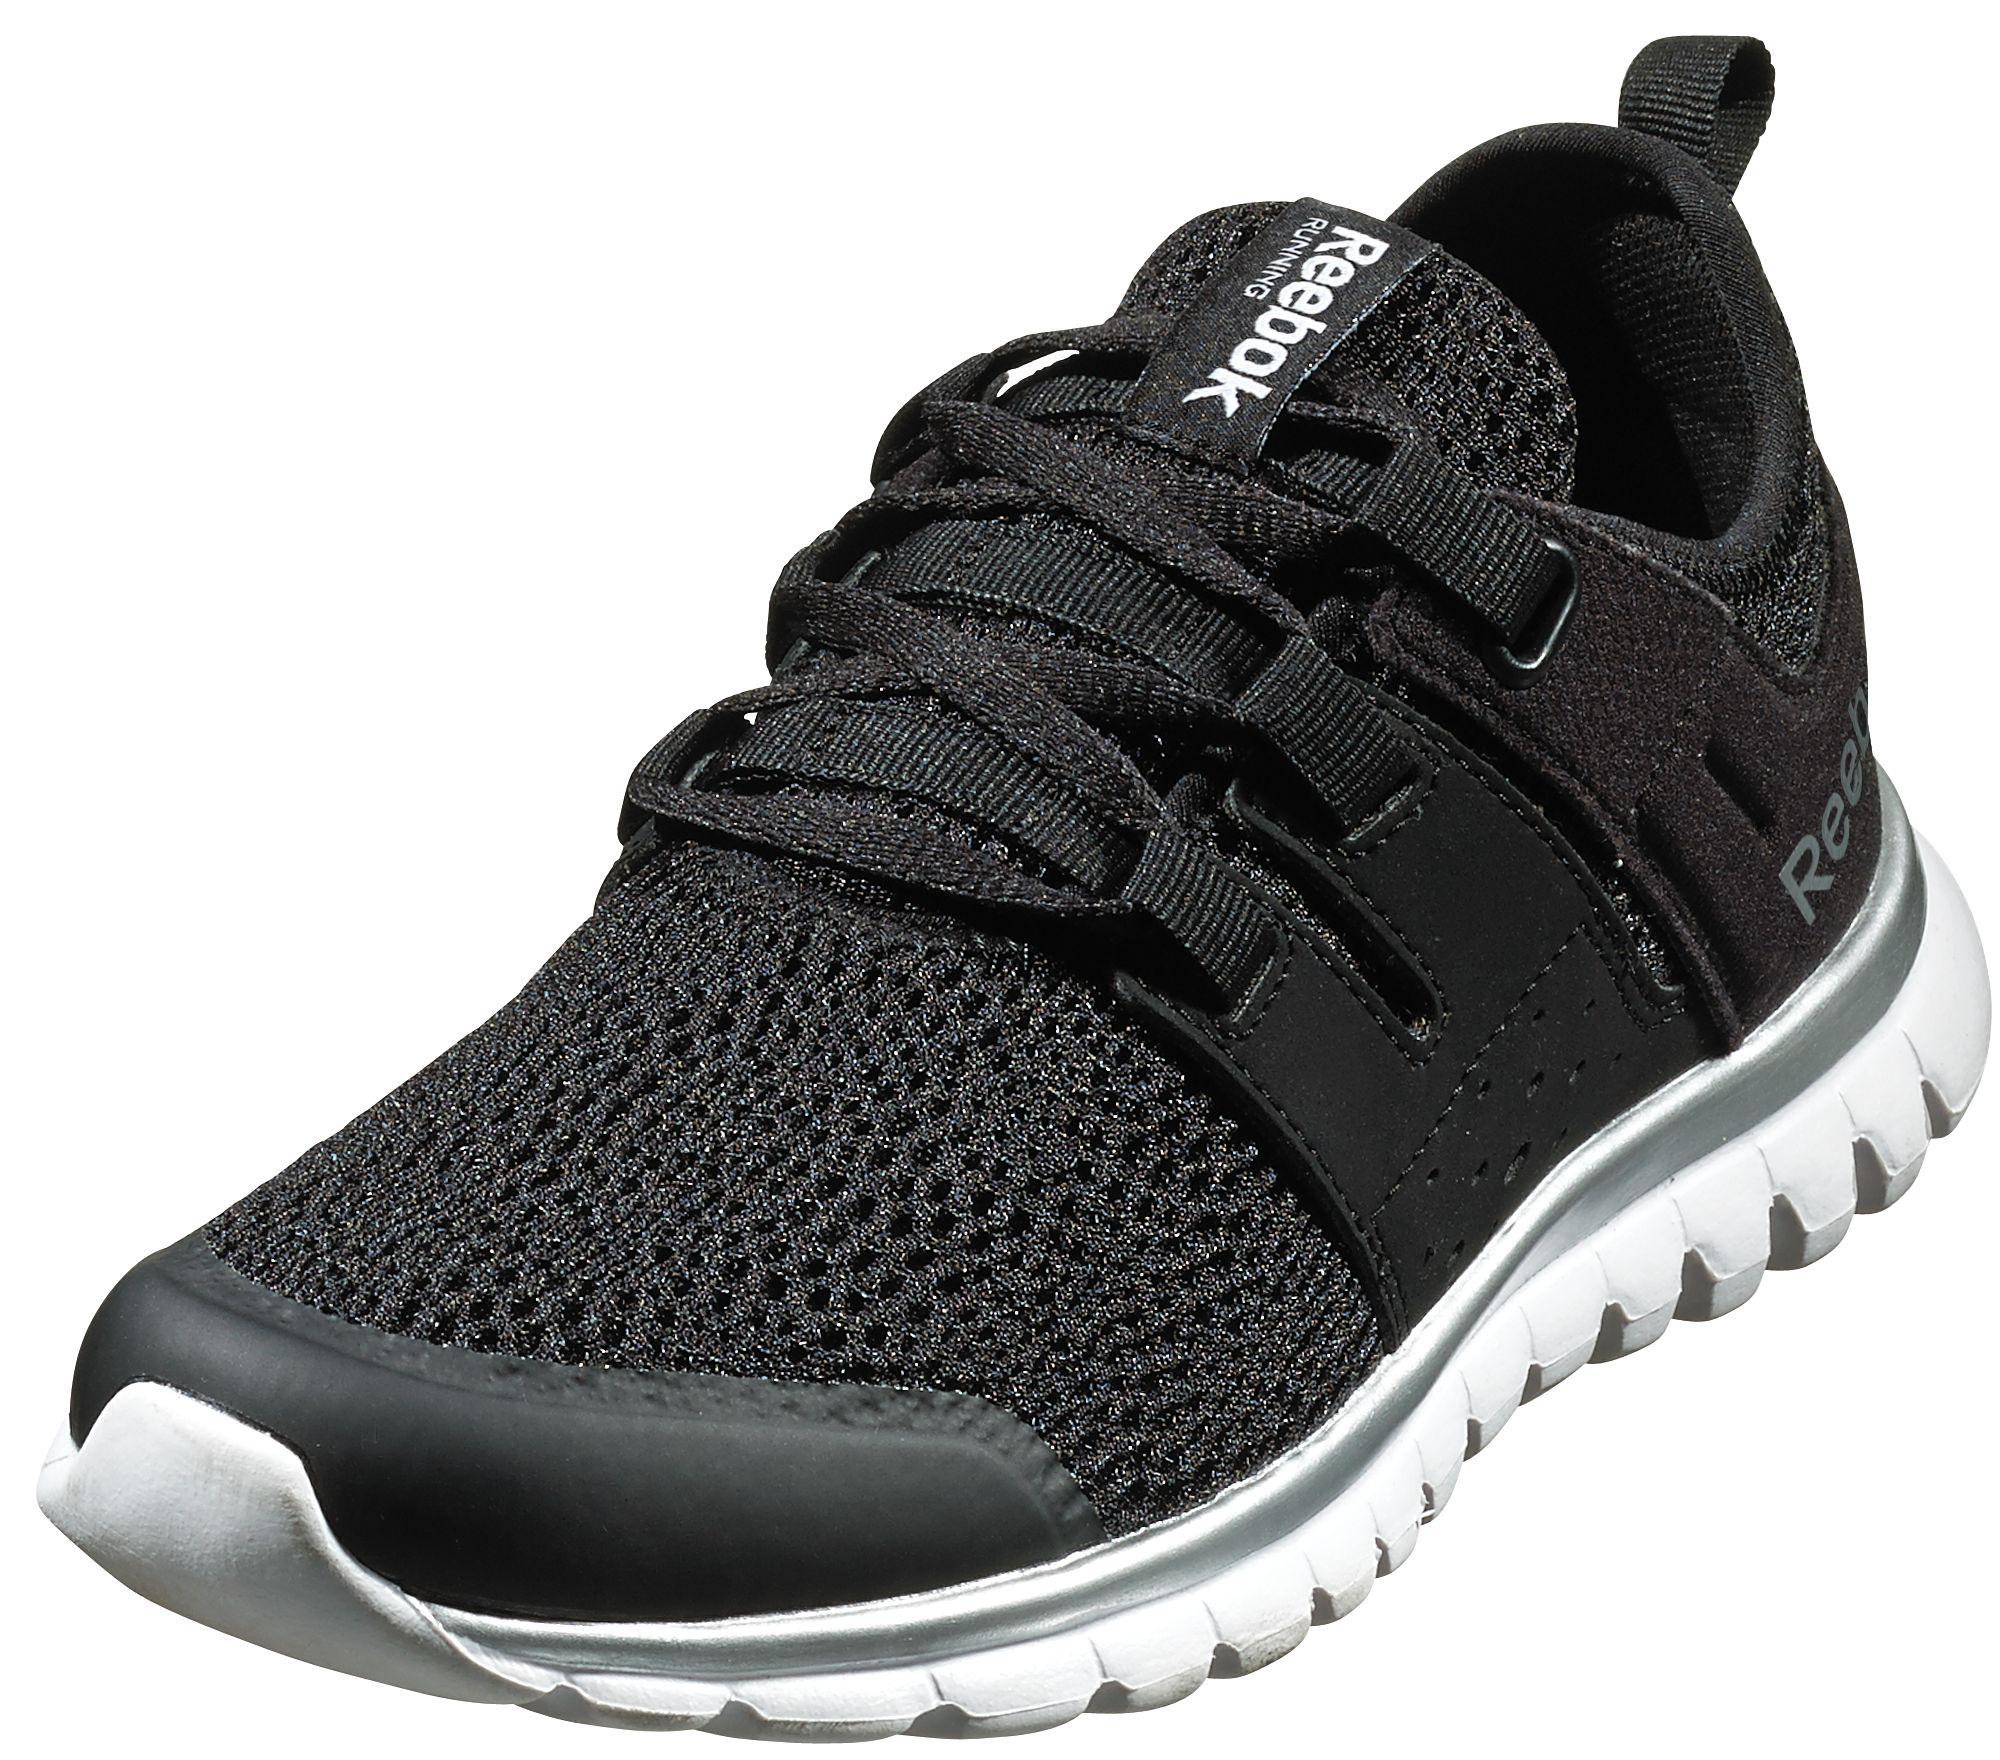 90f44a58ca6b13 Lyst - Reebok Sublite Authentic 2.0 Running Shoes in Black for Men